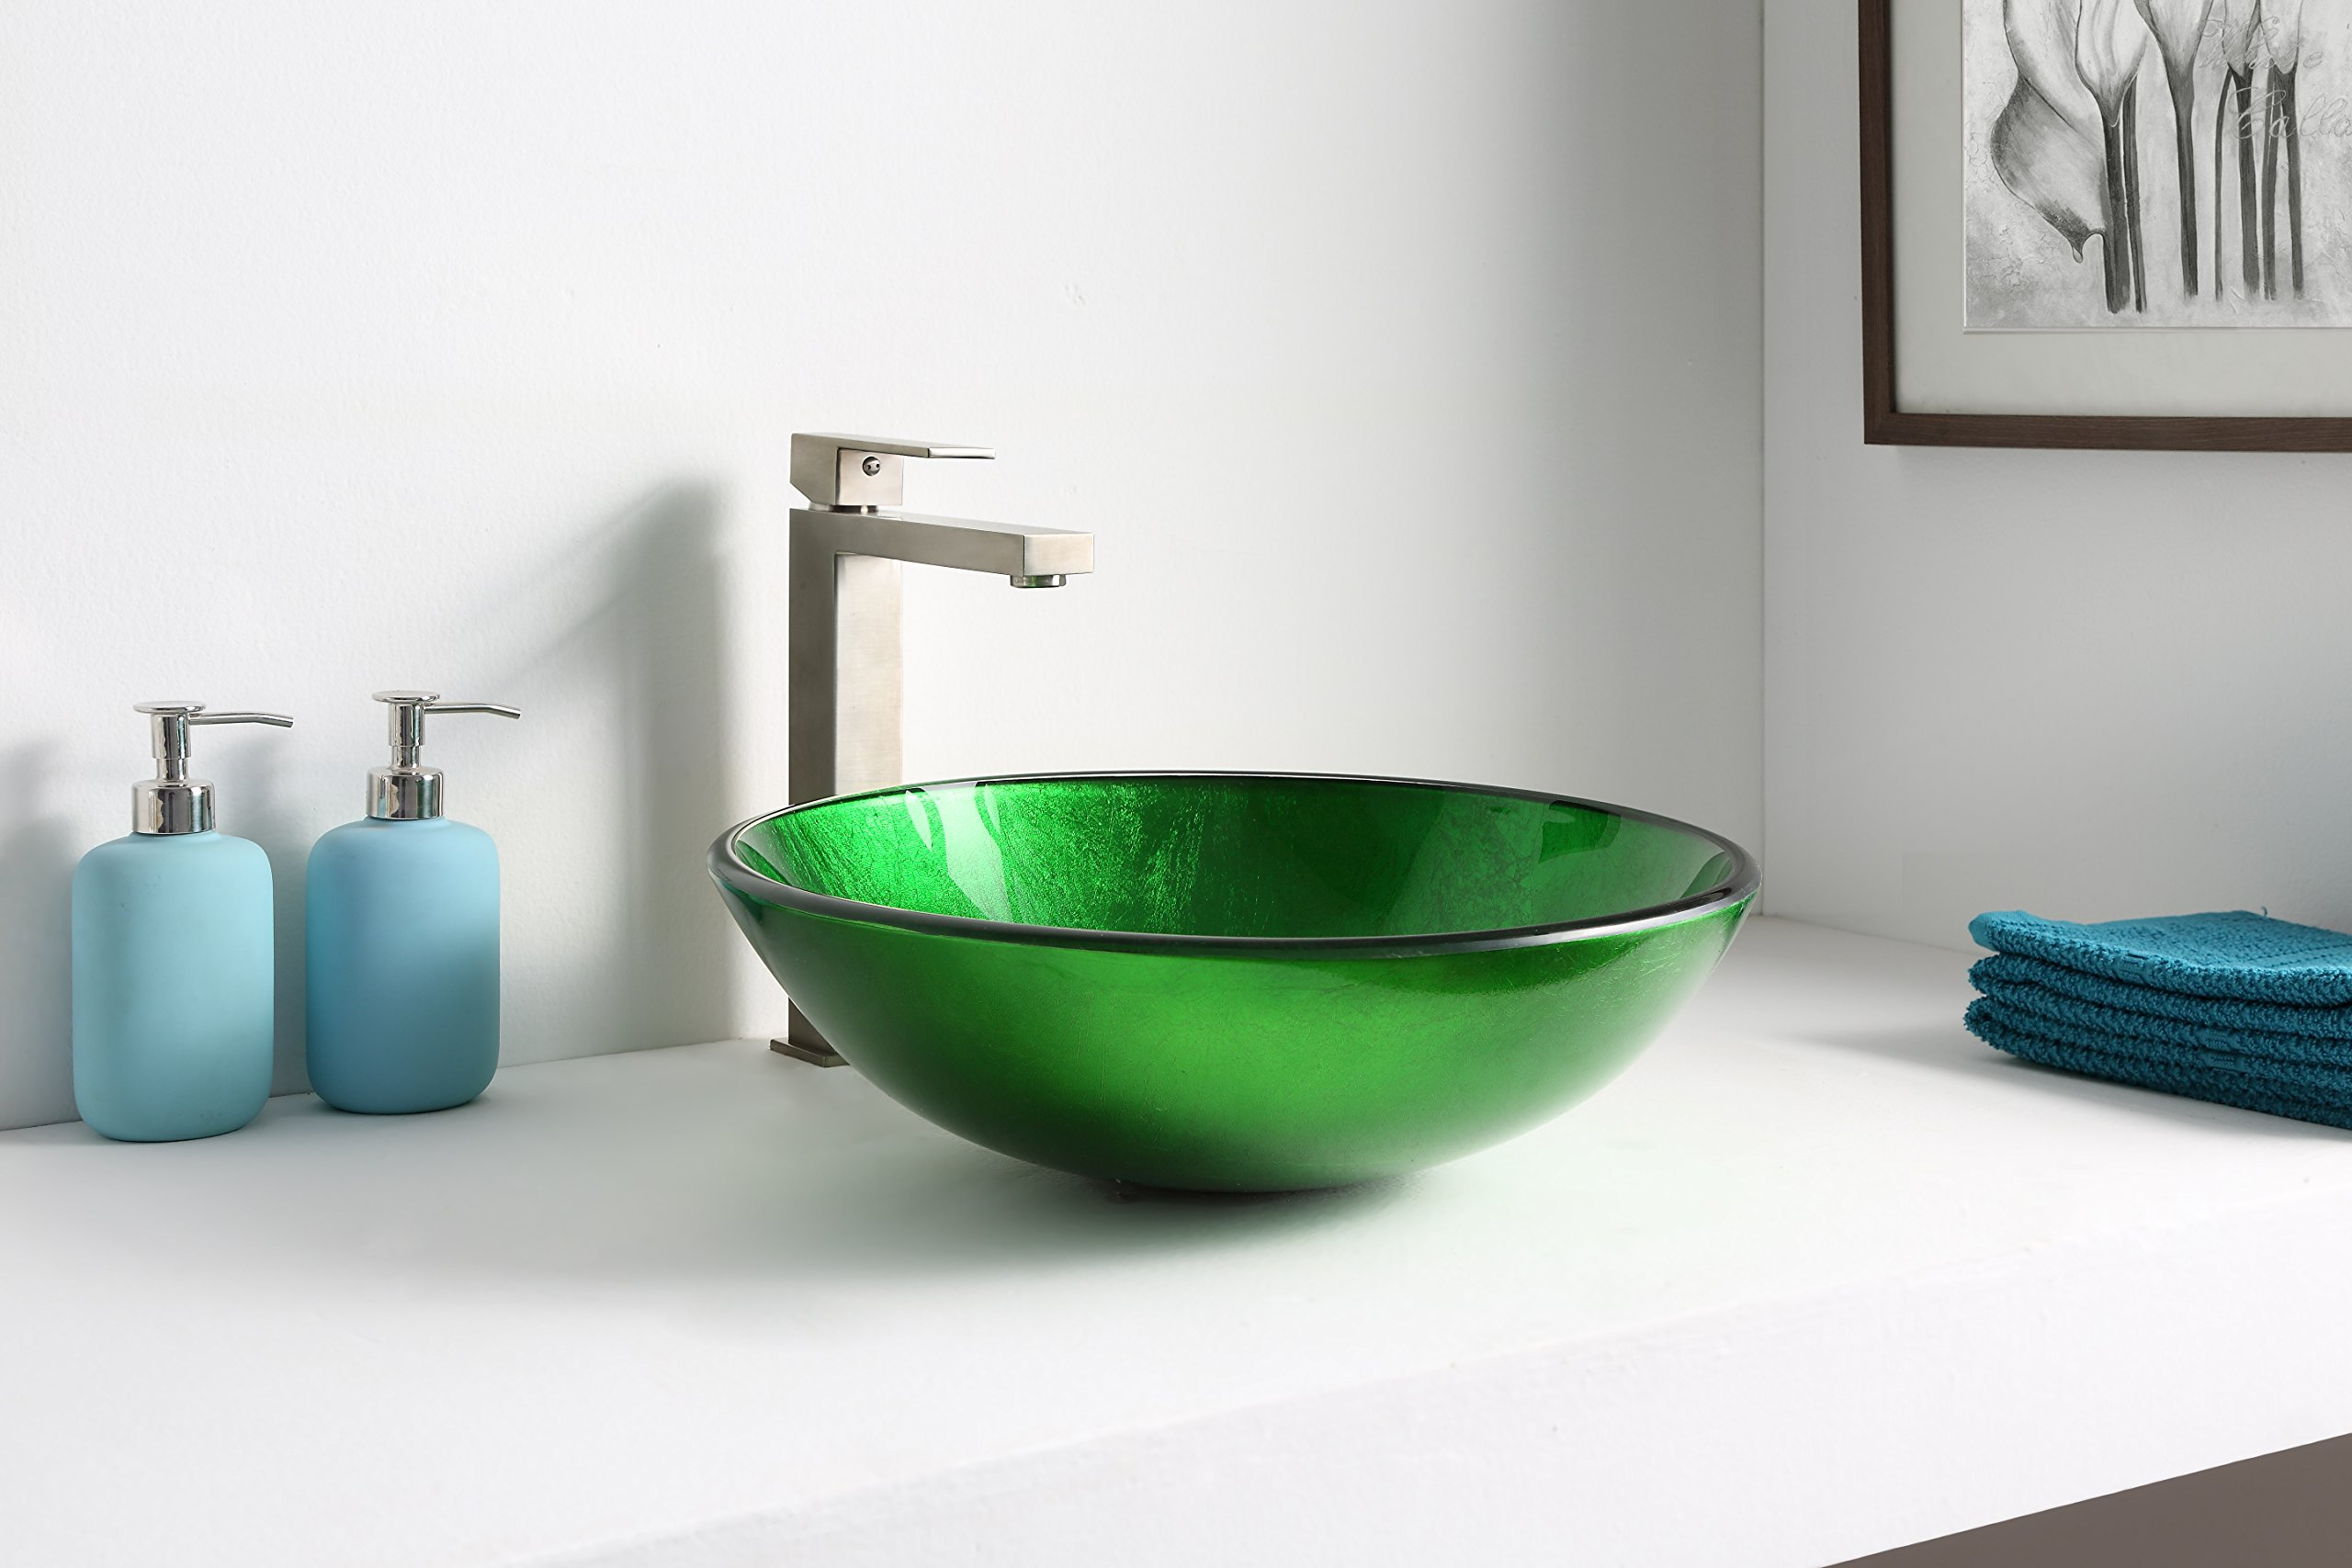 Tempered Glass Vessel Sink - Lustrous Green - Melody Series LS-AZ077 - ANZZI by ANZZI (Image #2)